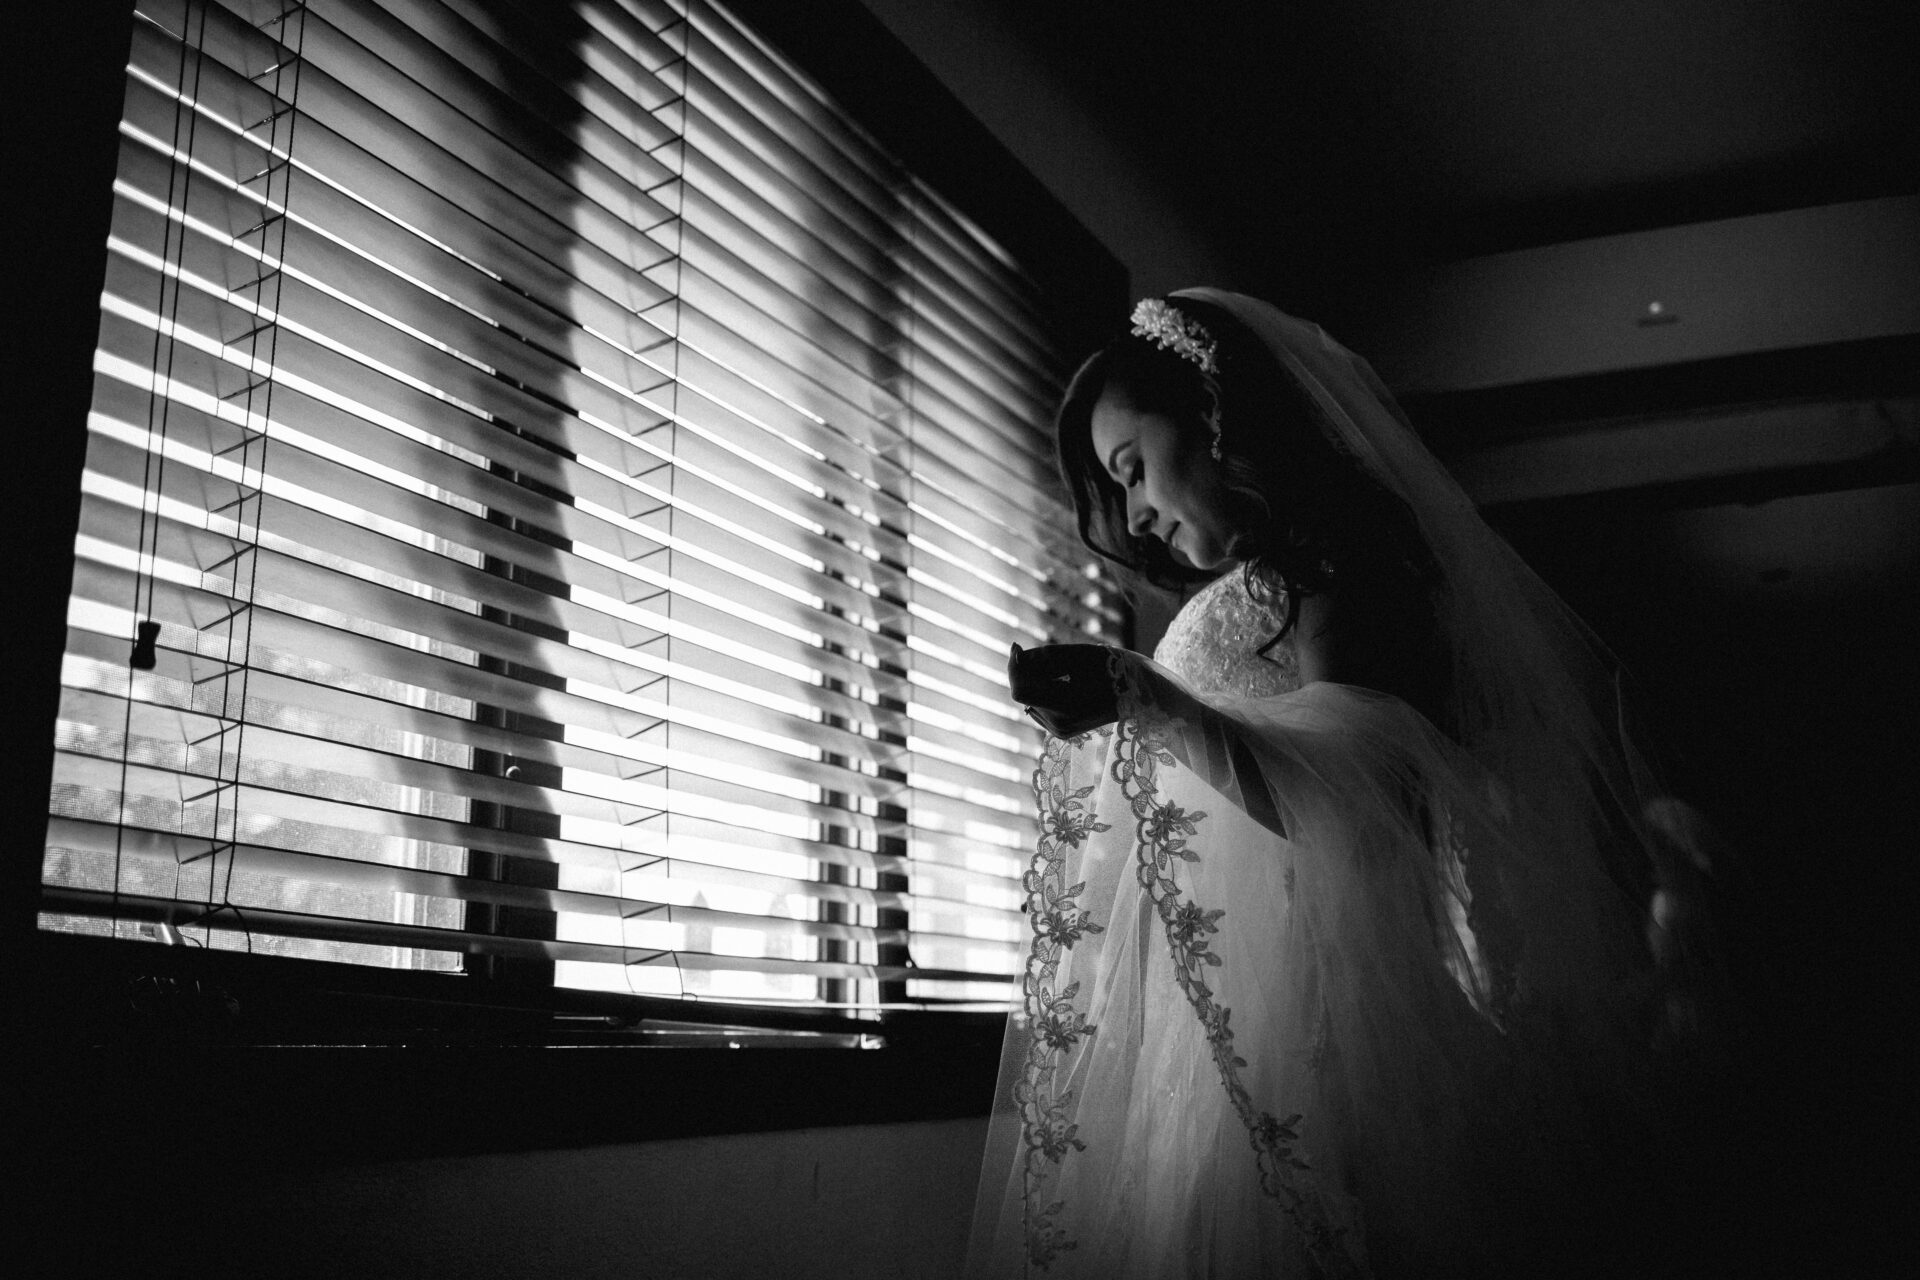 javier_noriega_fotografo_bodas_torreon_coahuila_zacatecas_wedding_photographer17a